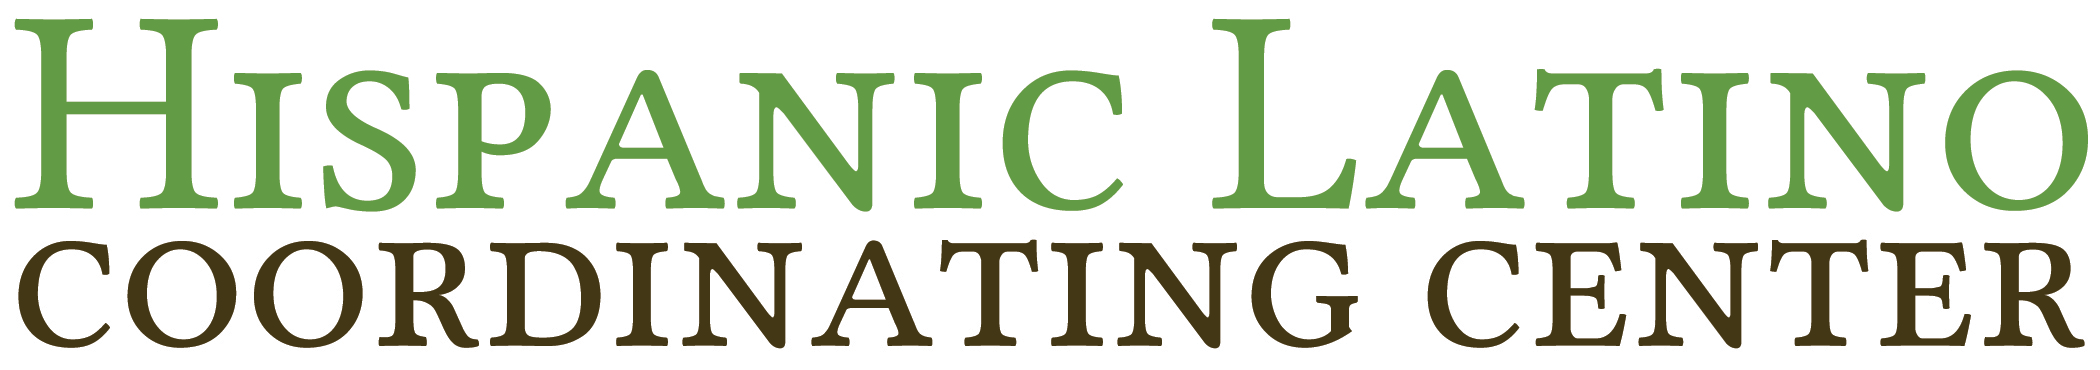 Hispanic Latino Coordinating Center home page